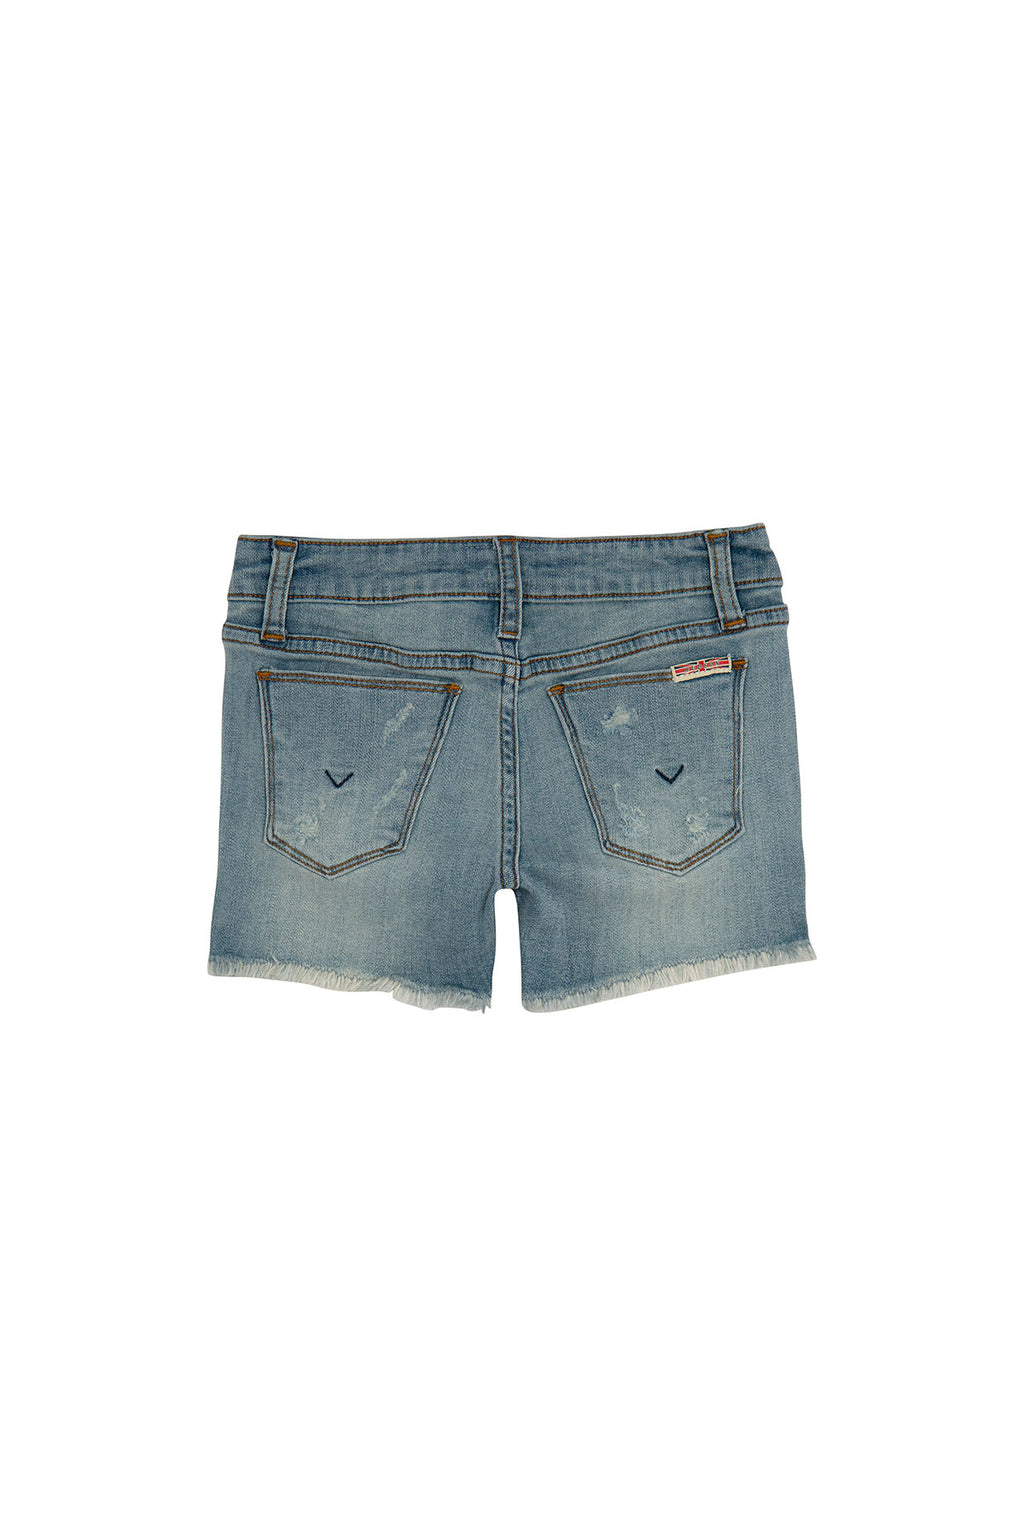 GIRLS CELESTINA SHORT, SIZES 7-16 - LONE STAR - Image 2